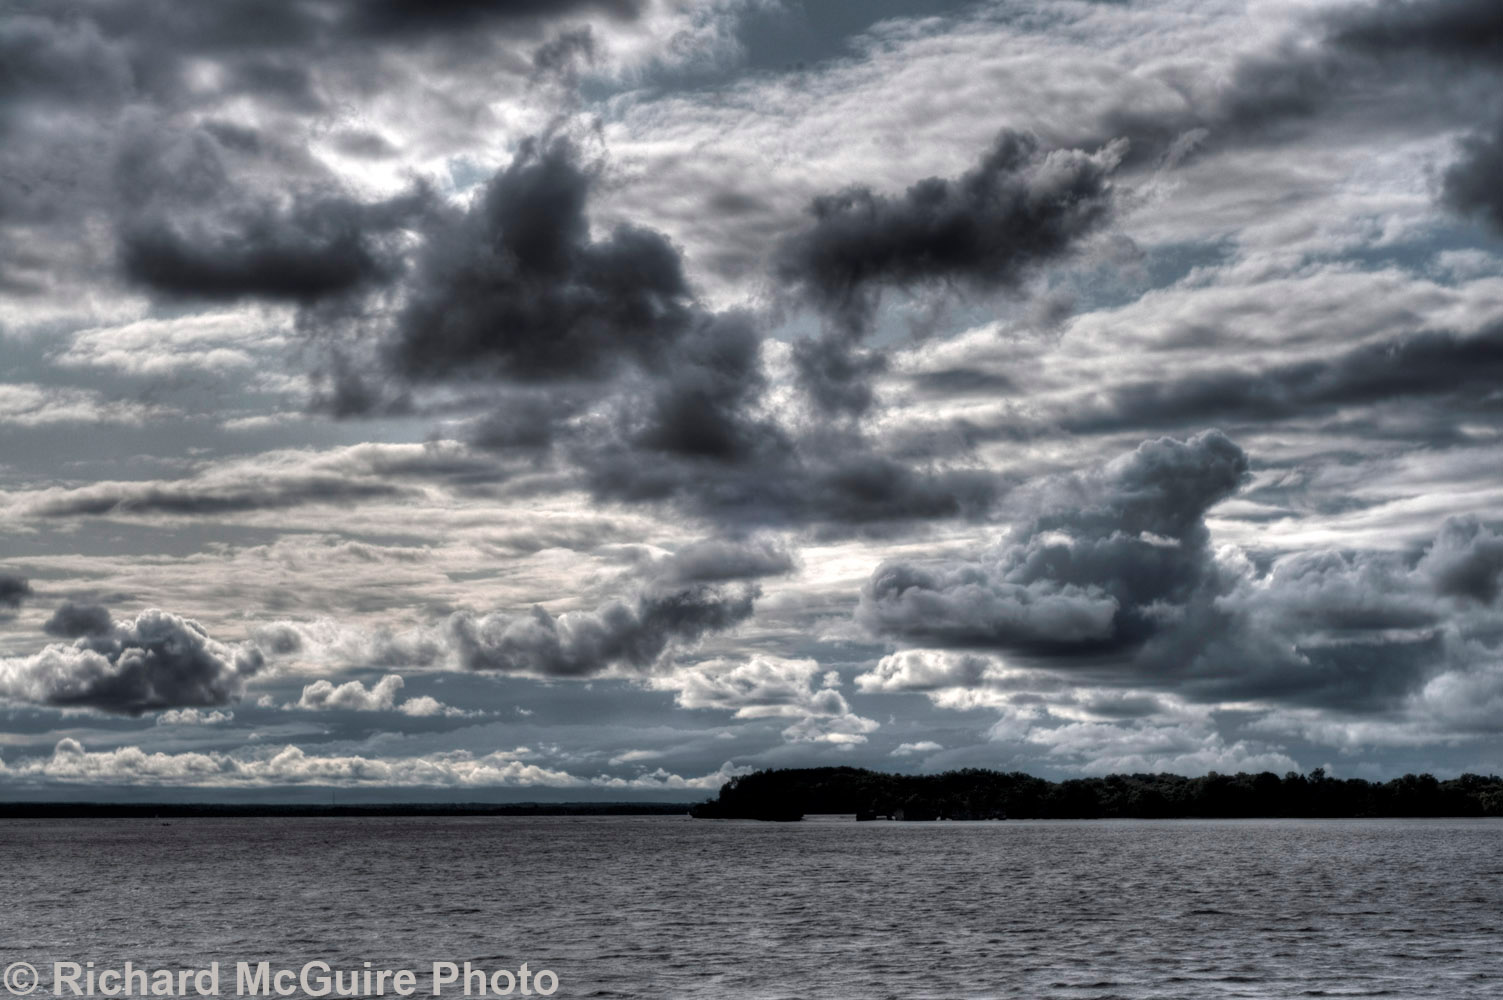 Storm clouds over the Ottawa River